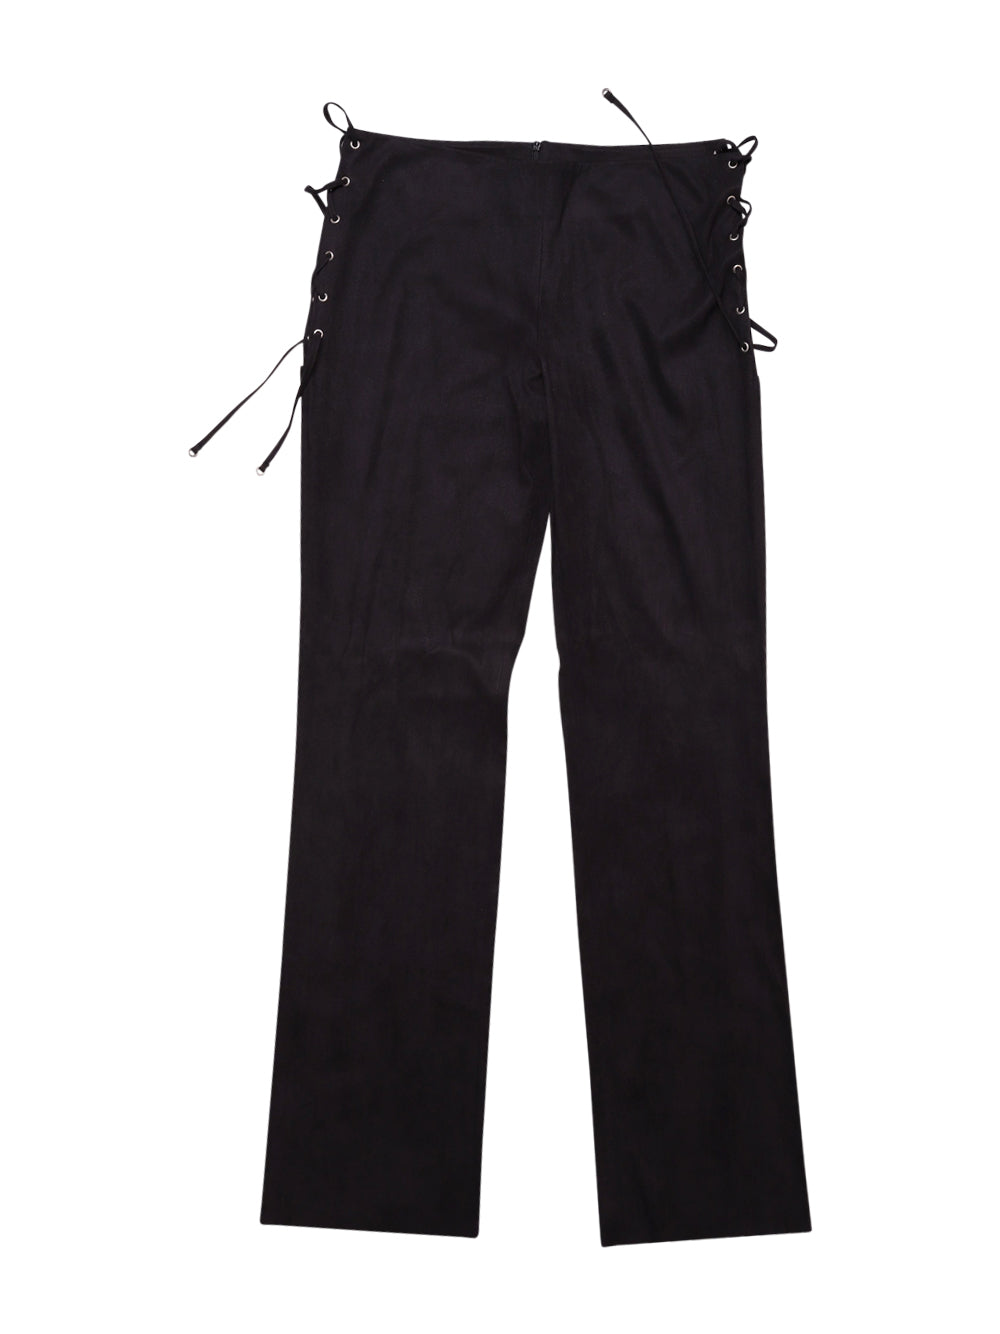 Front photo of Preloved Paola Frani Black Woman's trousers - size 12/L